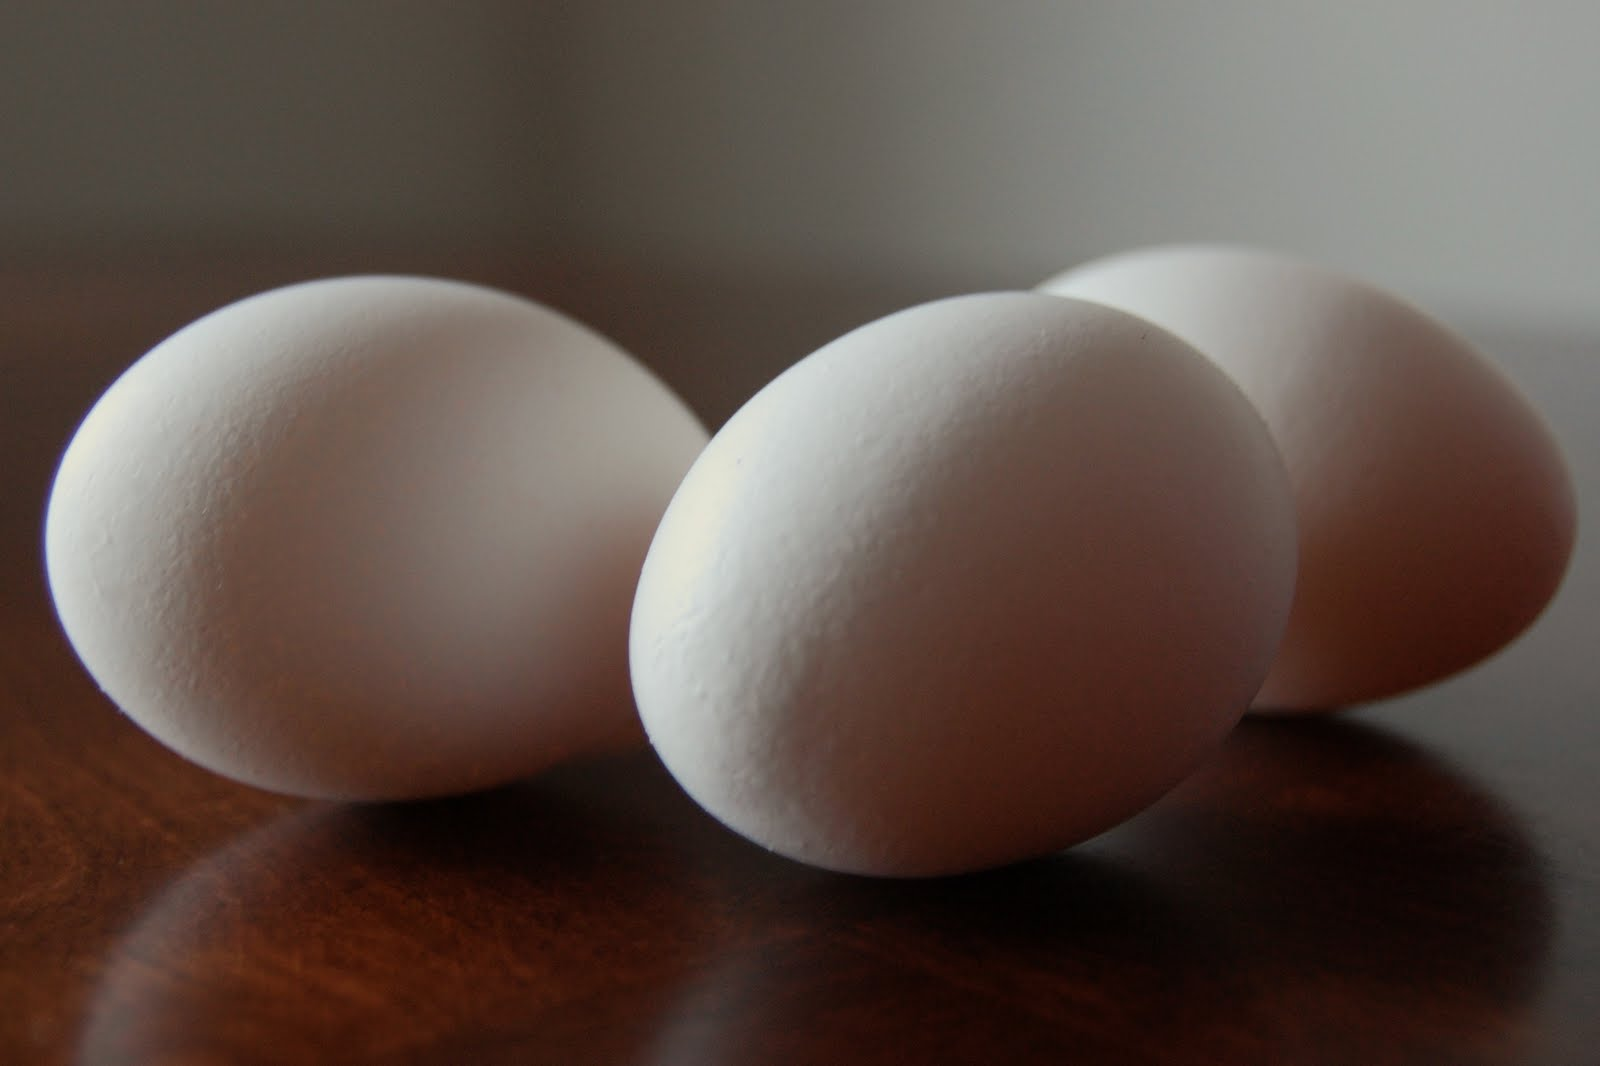 Do You Have Good or Bad Eggs?